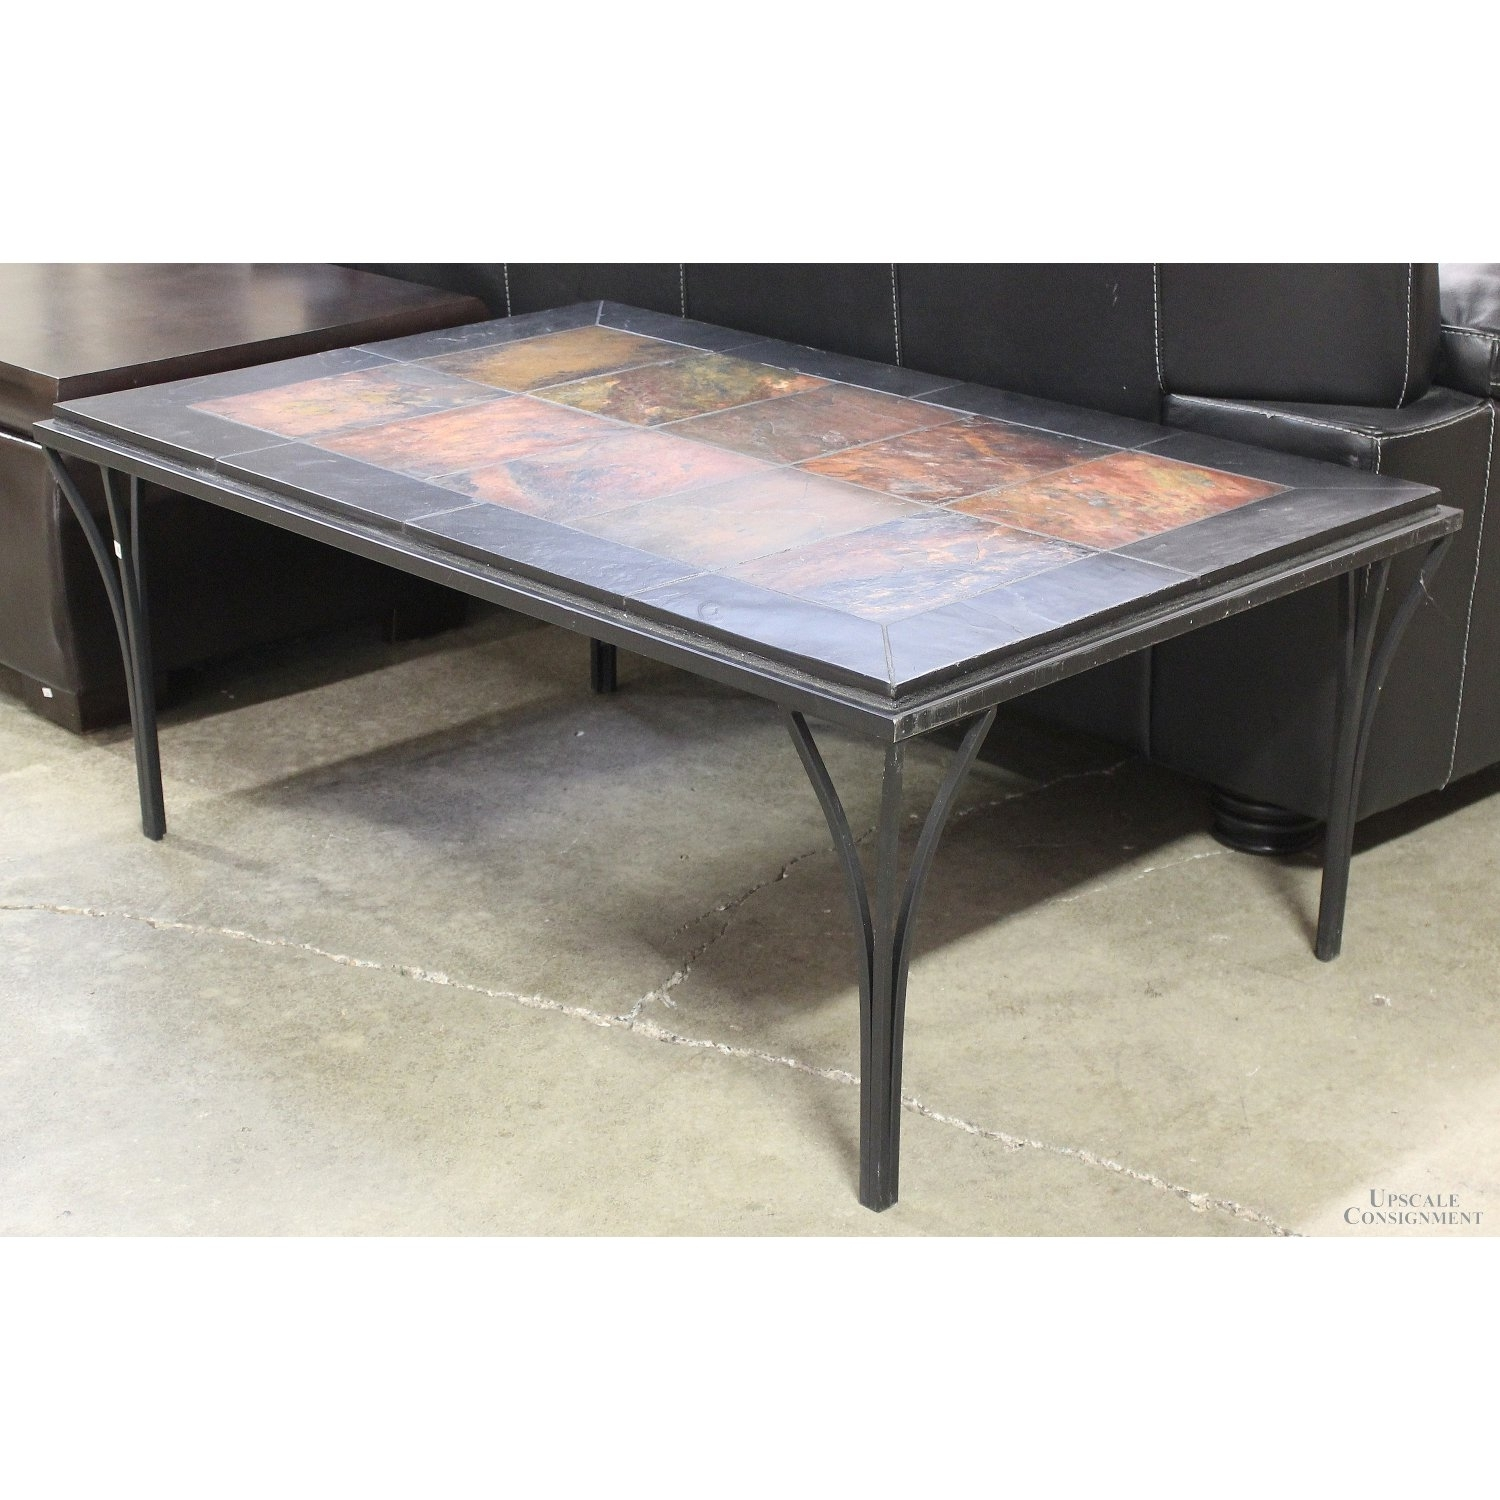 Stone Top Coffee Table | Upscale Consignment For Stone Top Coffee Tables (View 25 of 30)